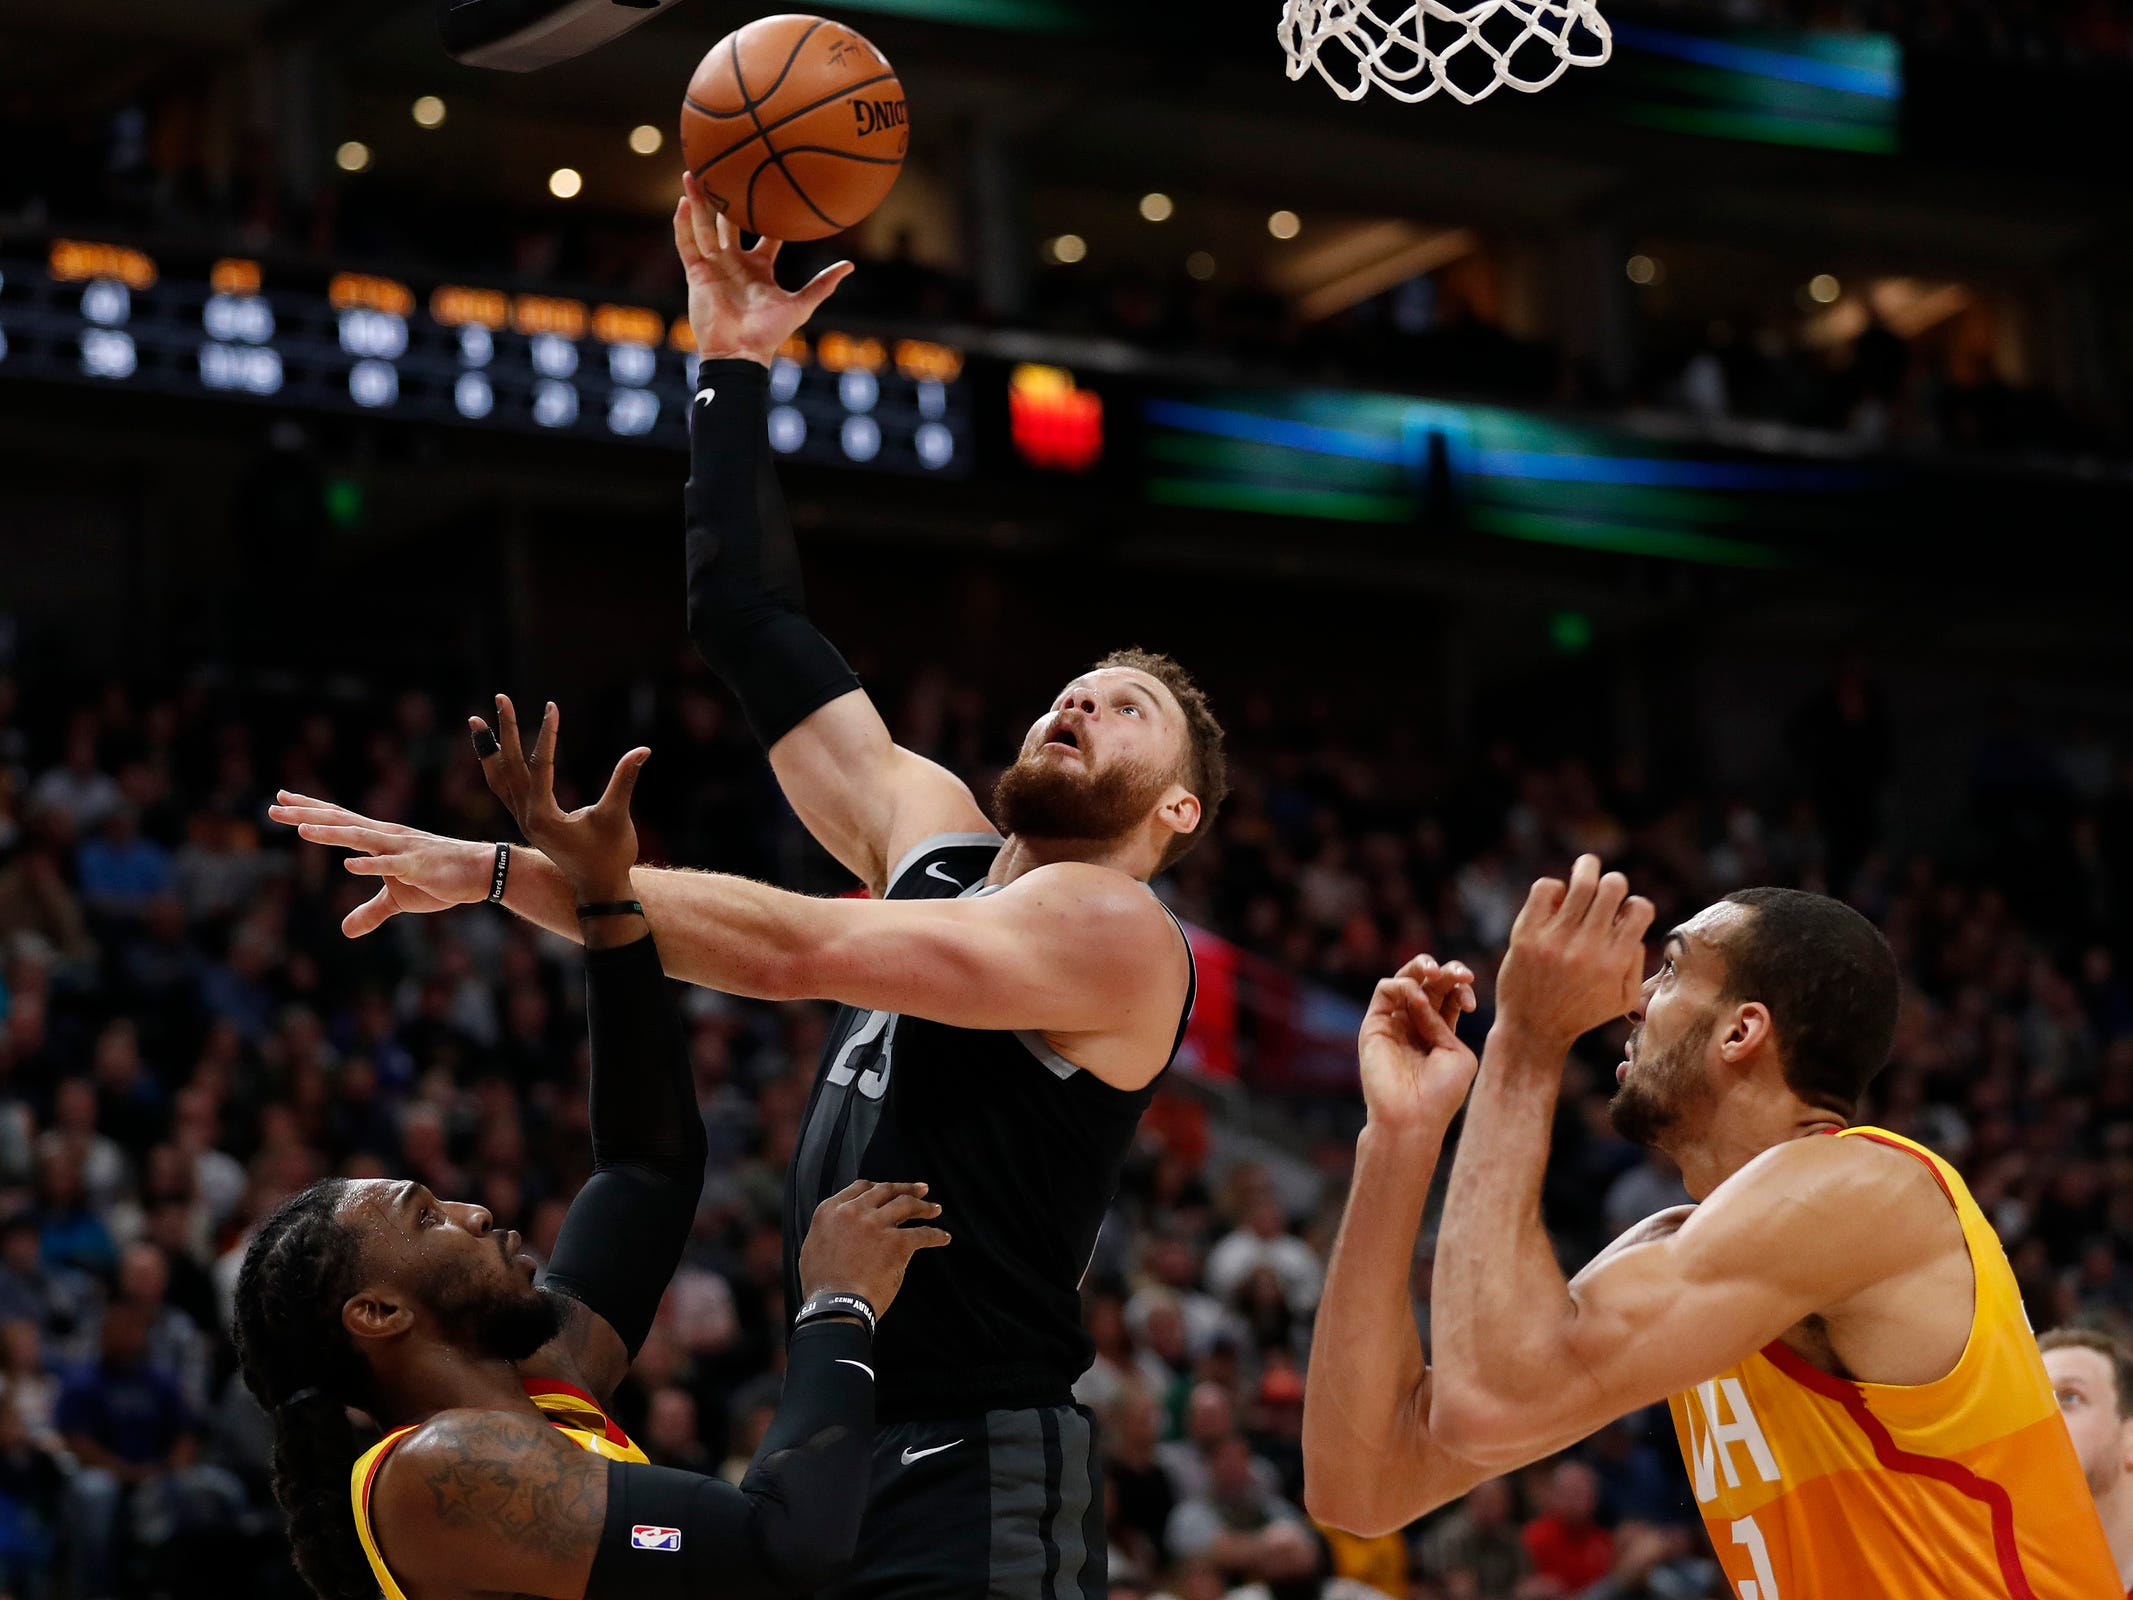 Pistons forward Blake Griffin shoots against Jazz forward Jae Crowder and center Rudy Gobert in the second quarter of the 100-94 loss to the Jazz on Monday, Jan. 14, 2019, in Salt Lake City.